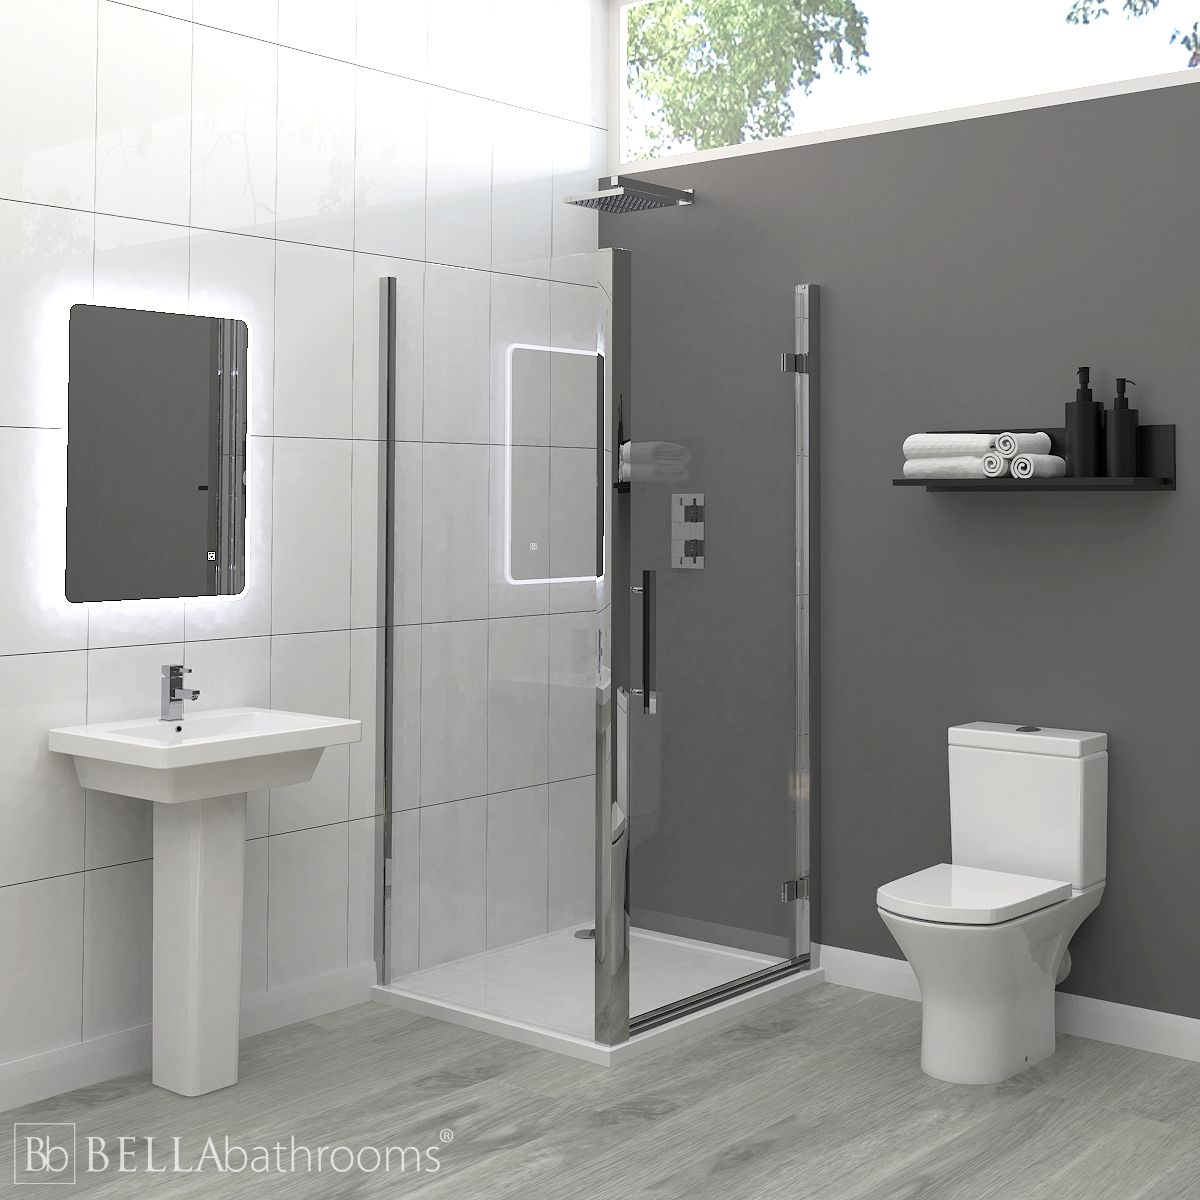 RAK Resort Ensuite Bathroom with Apex Hinged Shower Enclosure